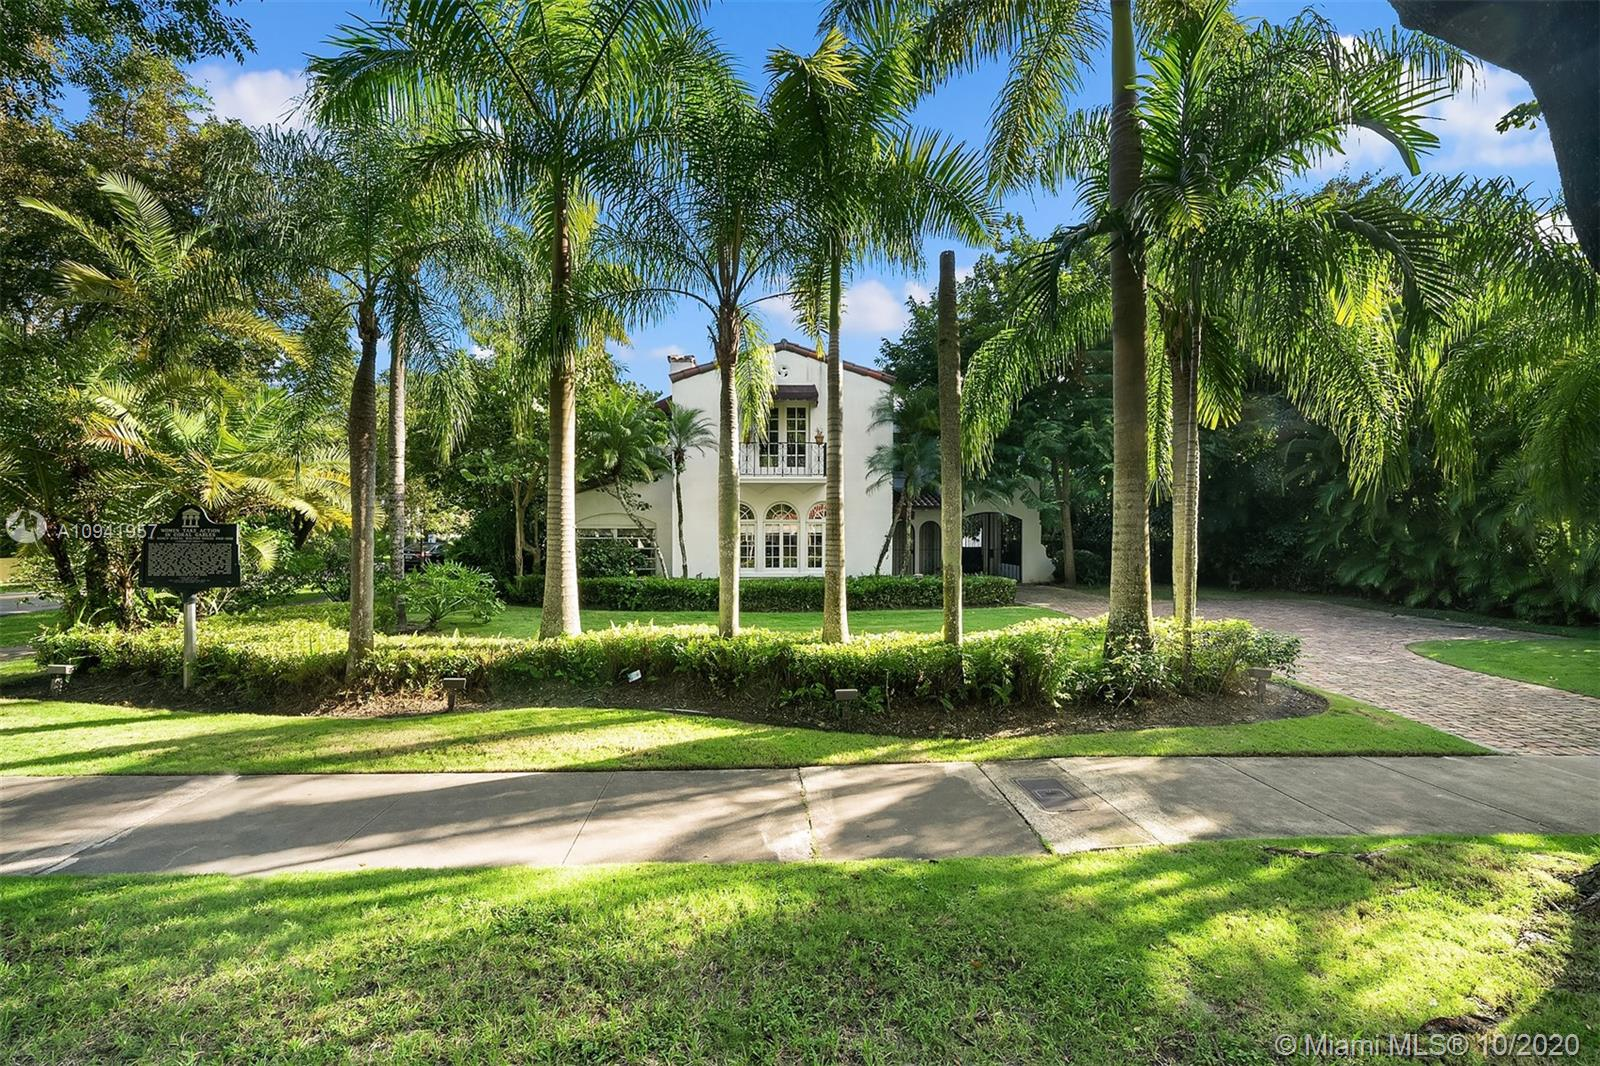 Embrace the history and lifestyle of Coral Gables with this two-story Mediterranean Revival residence. Stepping inside this beautiful home is like stepping back in time, with its arched windows, iron railing staircase, Spanish and terracotta tile, and original Dade County Pine floors. The main home includes three bedrooms with balconies, two bathrooms, a chef's kitchen with antique white cabinets and high-end appliances, and a living room with a gas-fueled fireplace for additional comfort.  Nestled in a lush, leafy garden with fruit trees are a 1/1 guest suite, lagoon-style pool, patio, children's playground and garage. This home is minutes away from cafes, restaurants, shops and a selection of premier schools.